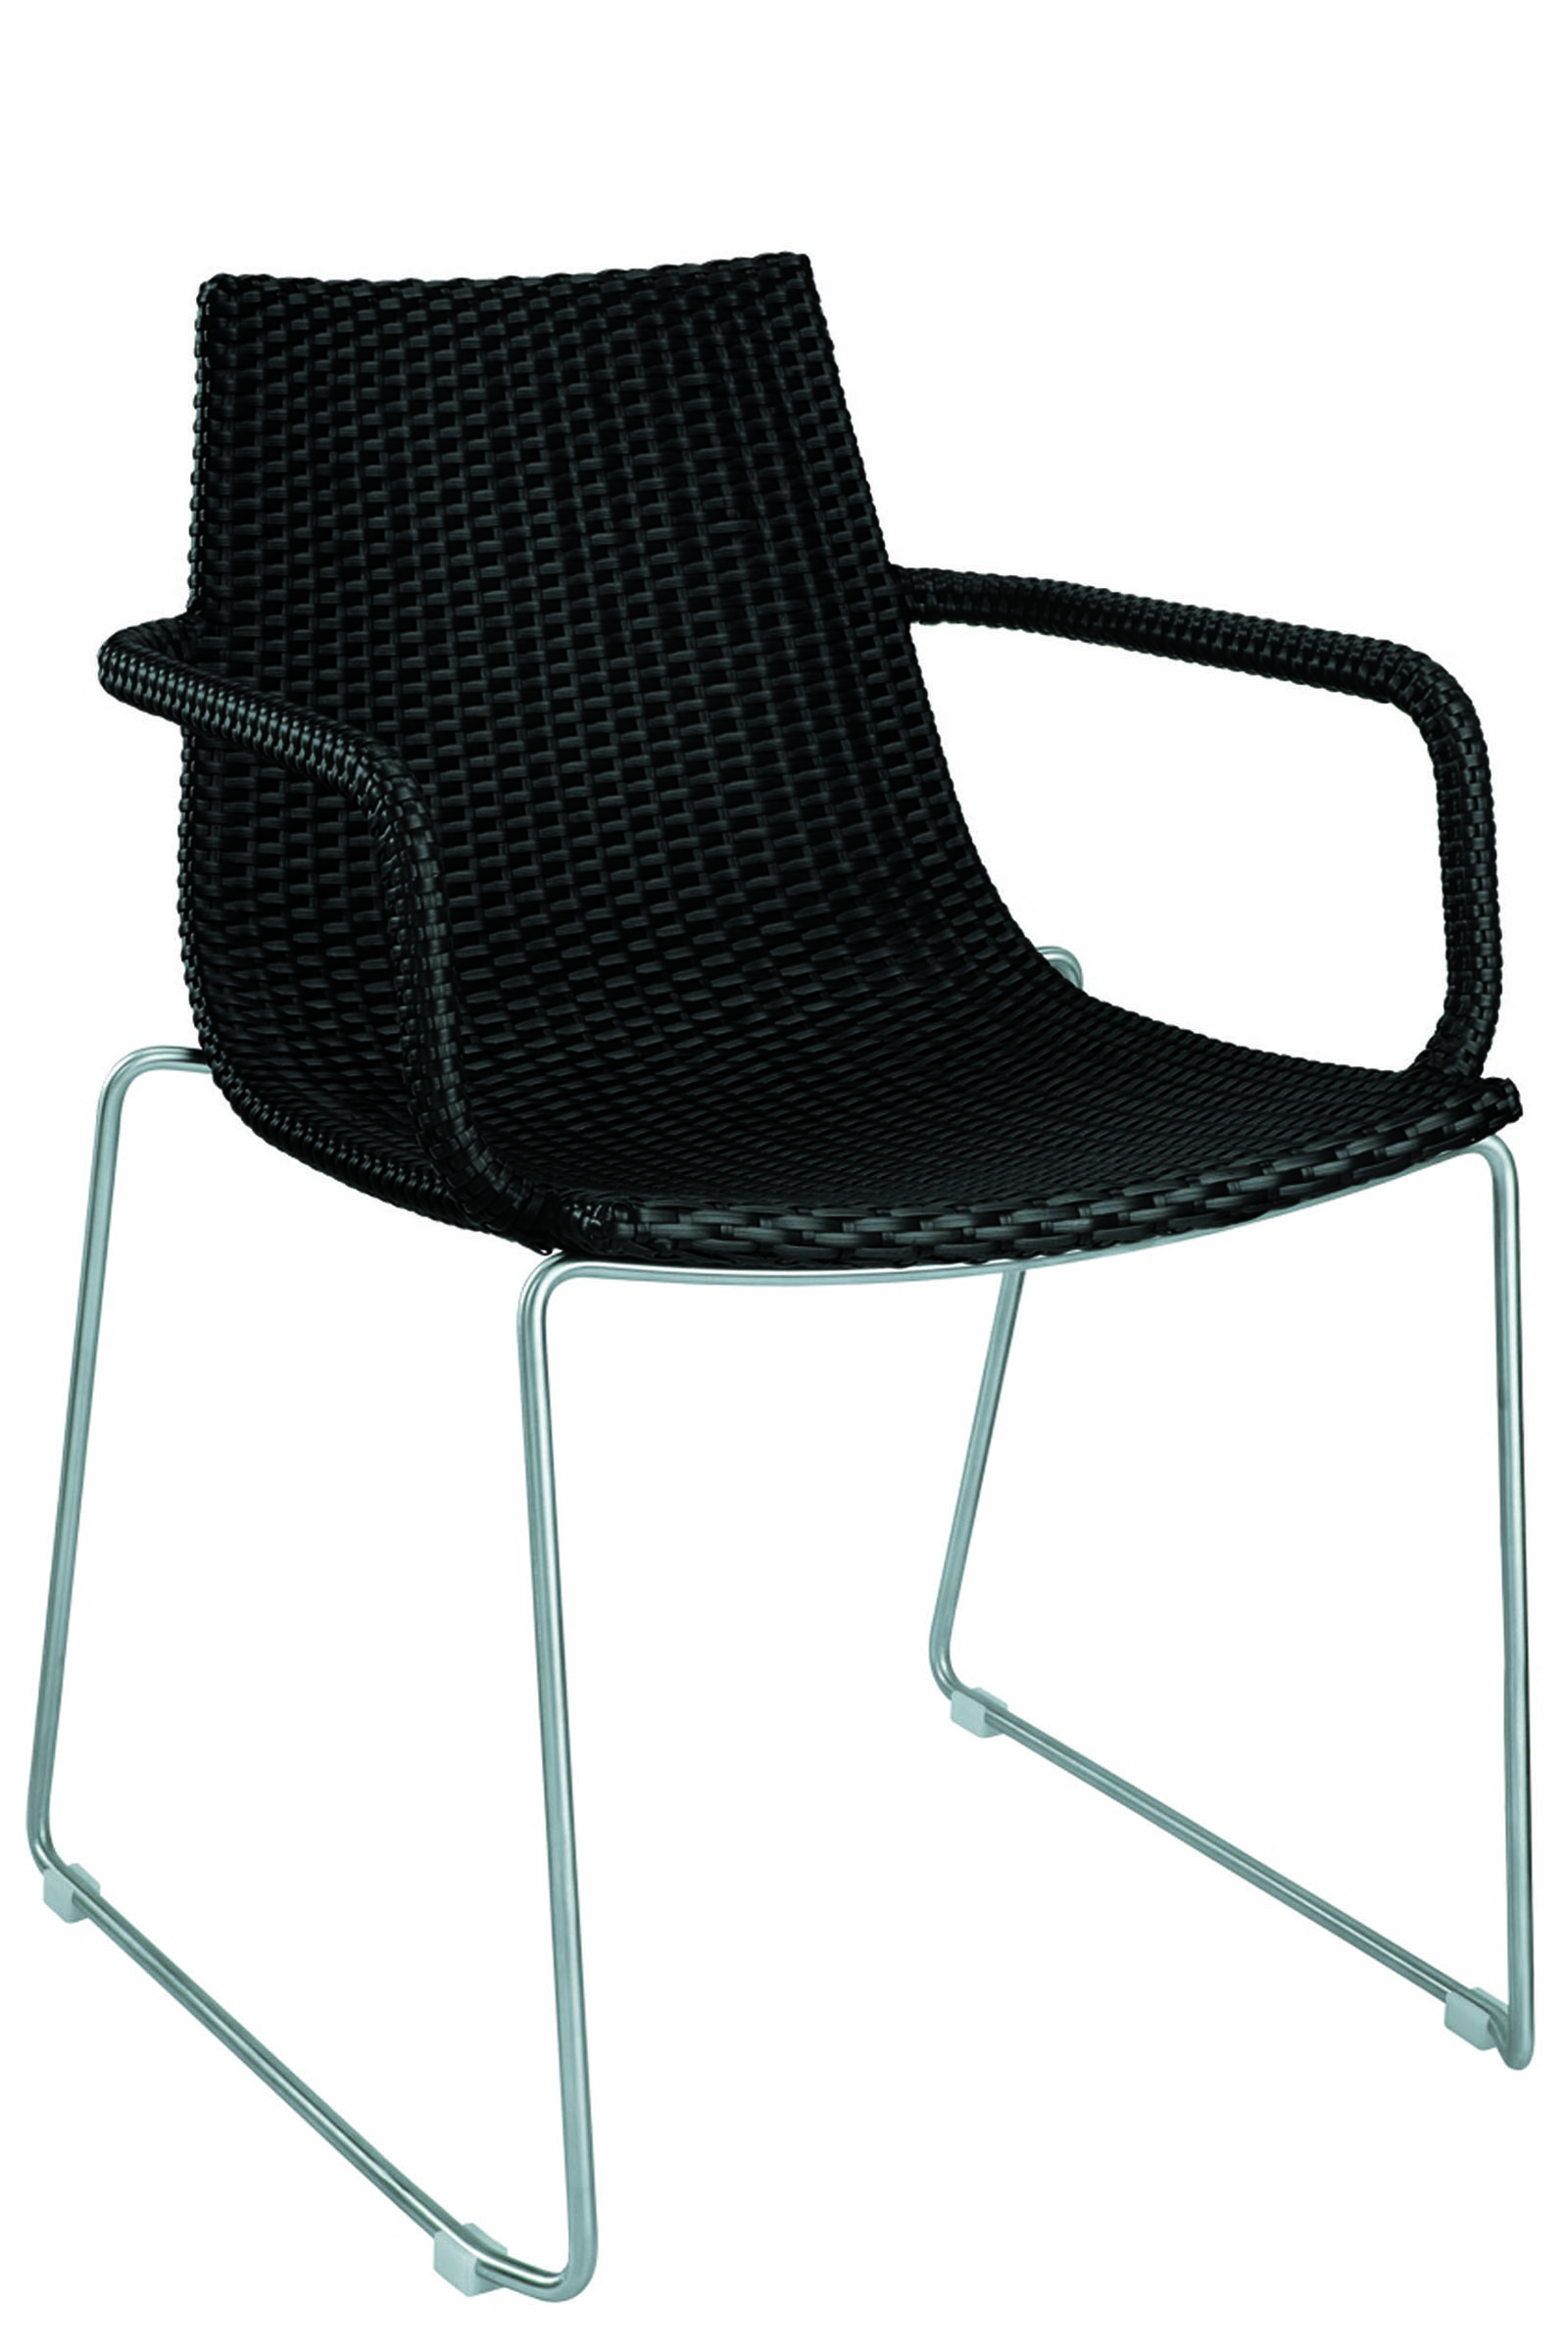 AL-7907-04-R DYNAMIC ARMCHAIR BLACK REEDED